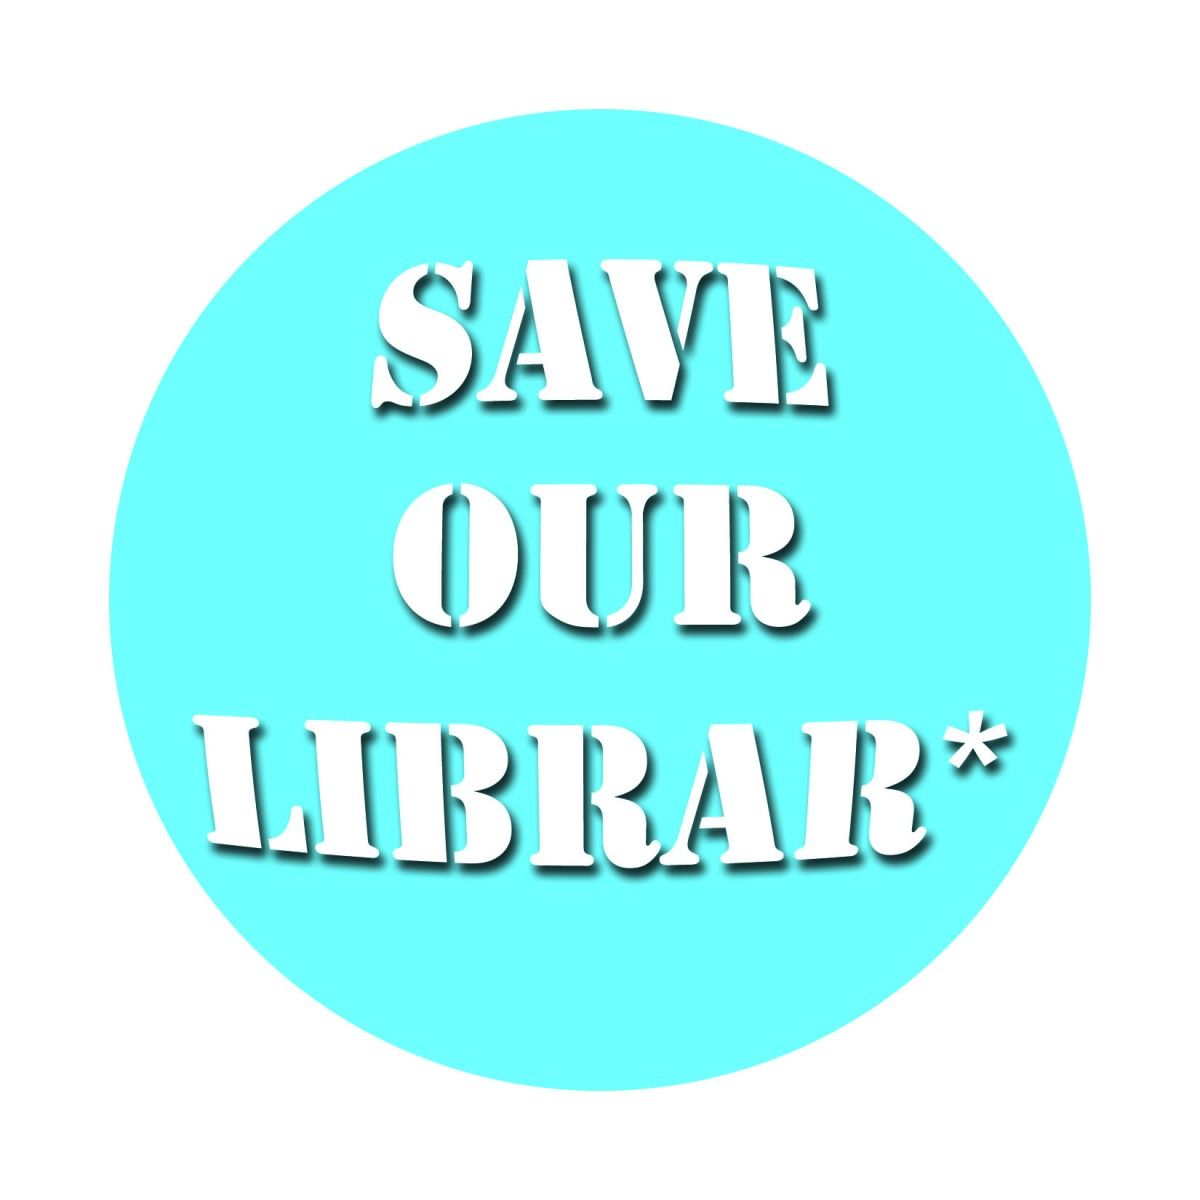 Save our Librar* by Andrea Davis